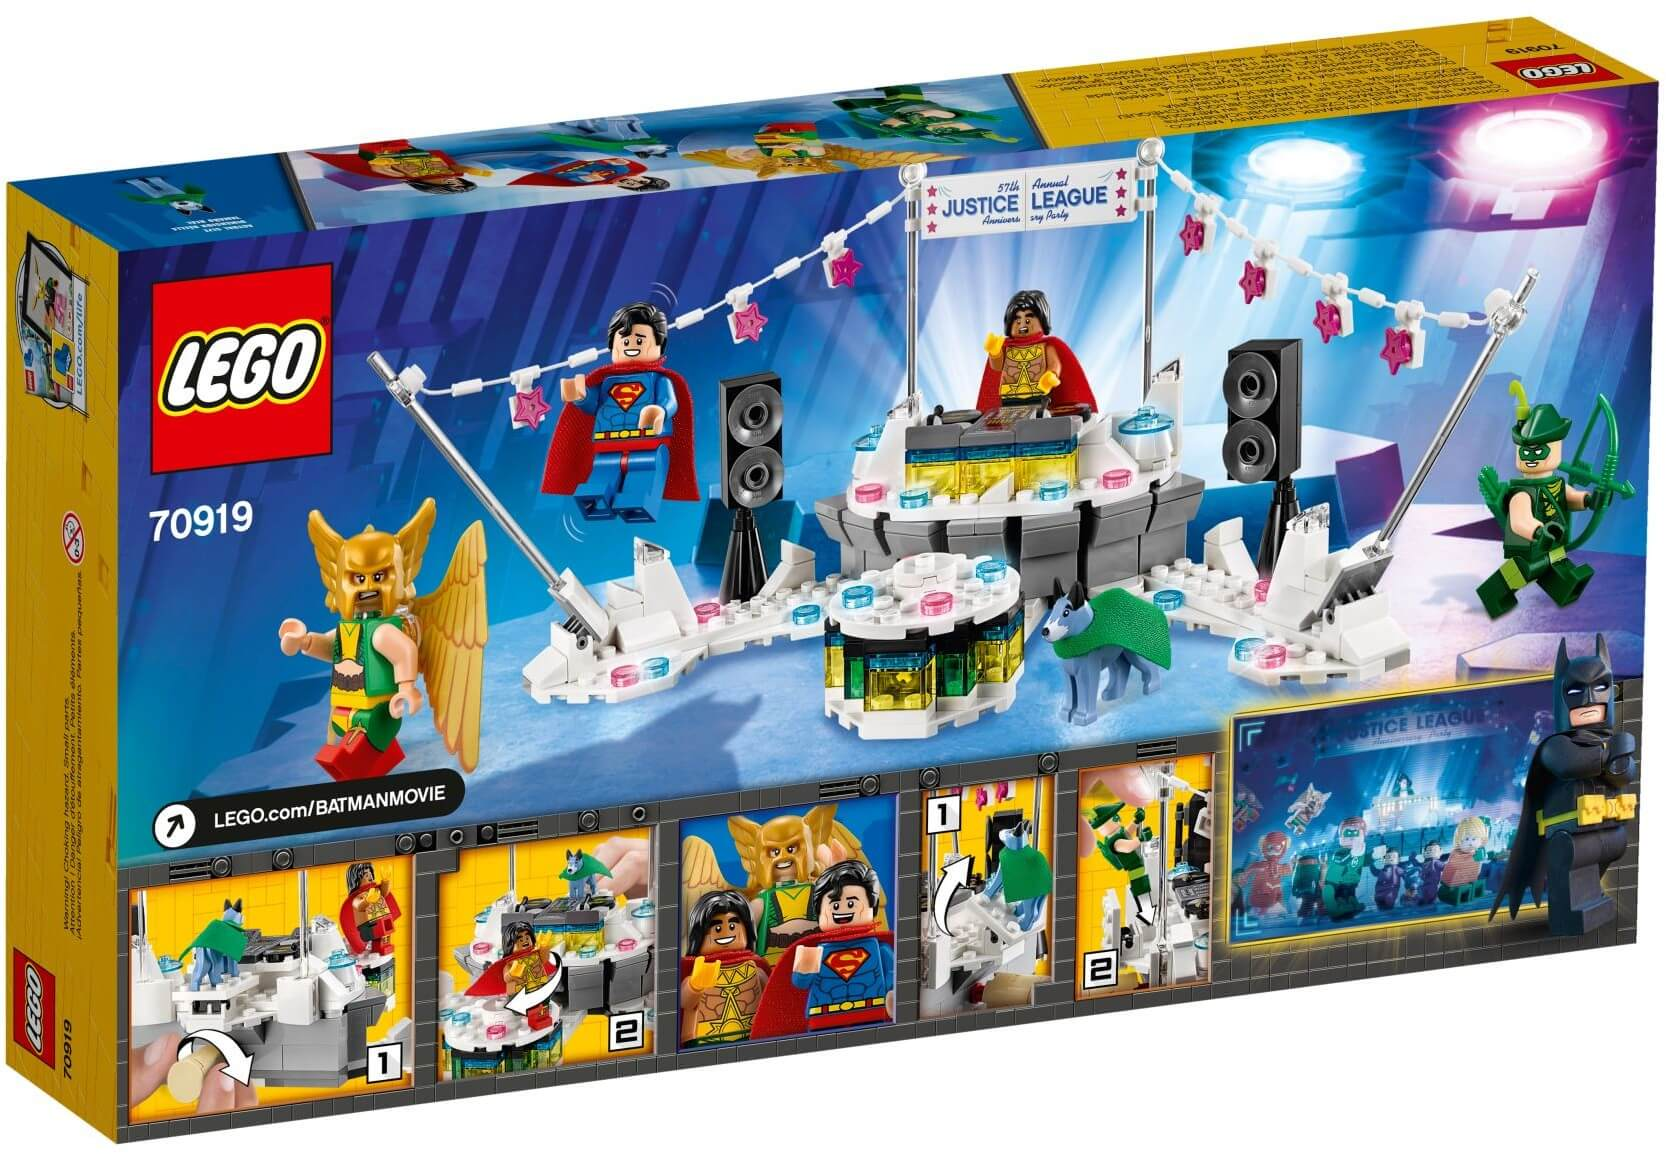 Mua đồ chơi LEGO 70919 - LEGO The Batman Movie 70919 - Anh Hùng Hội Tụ (LEGO The Batman Movie 70919 The Justice League Anniversary Party)